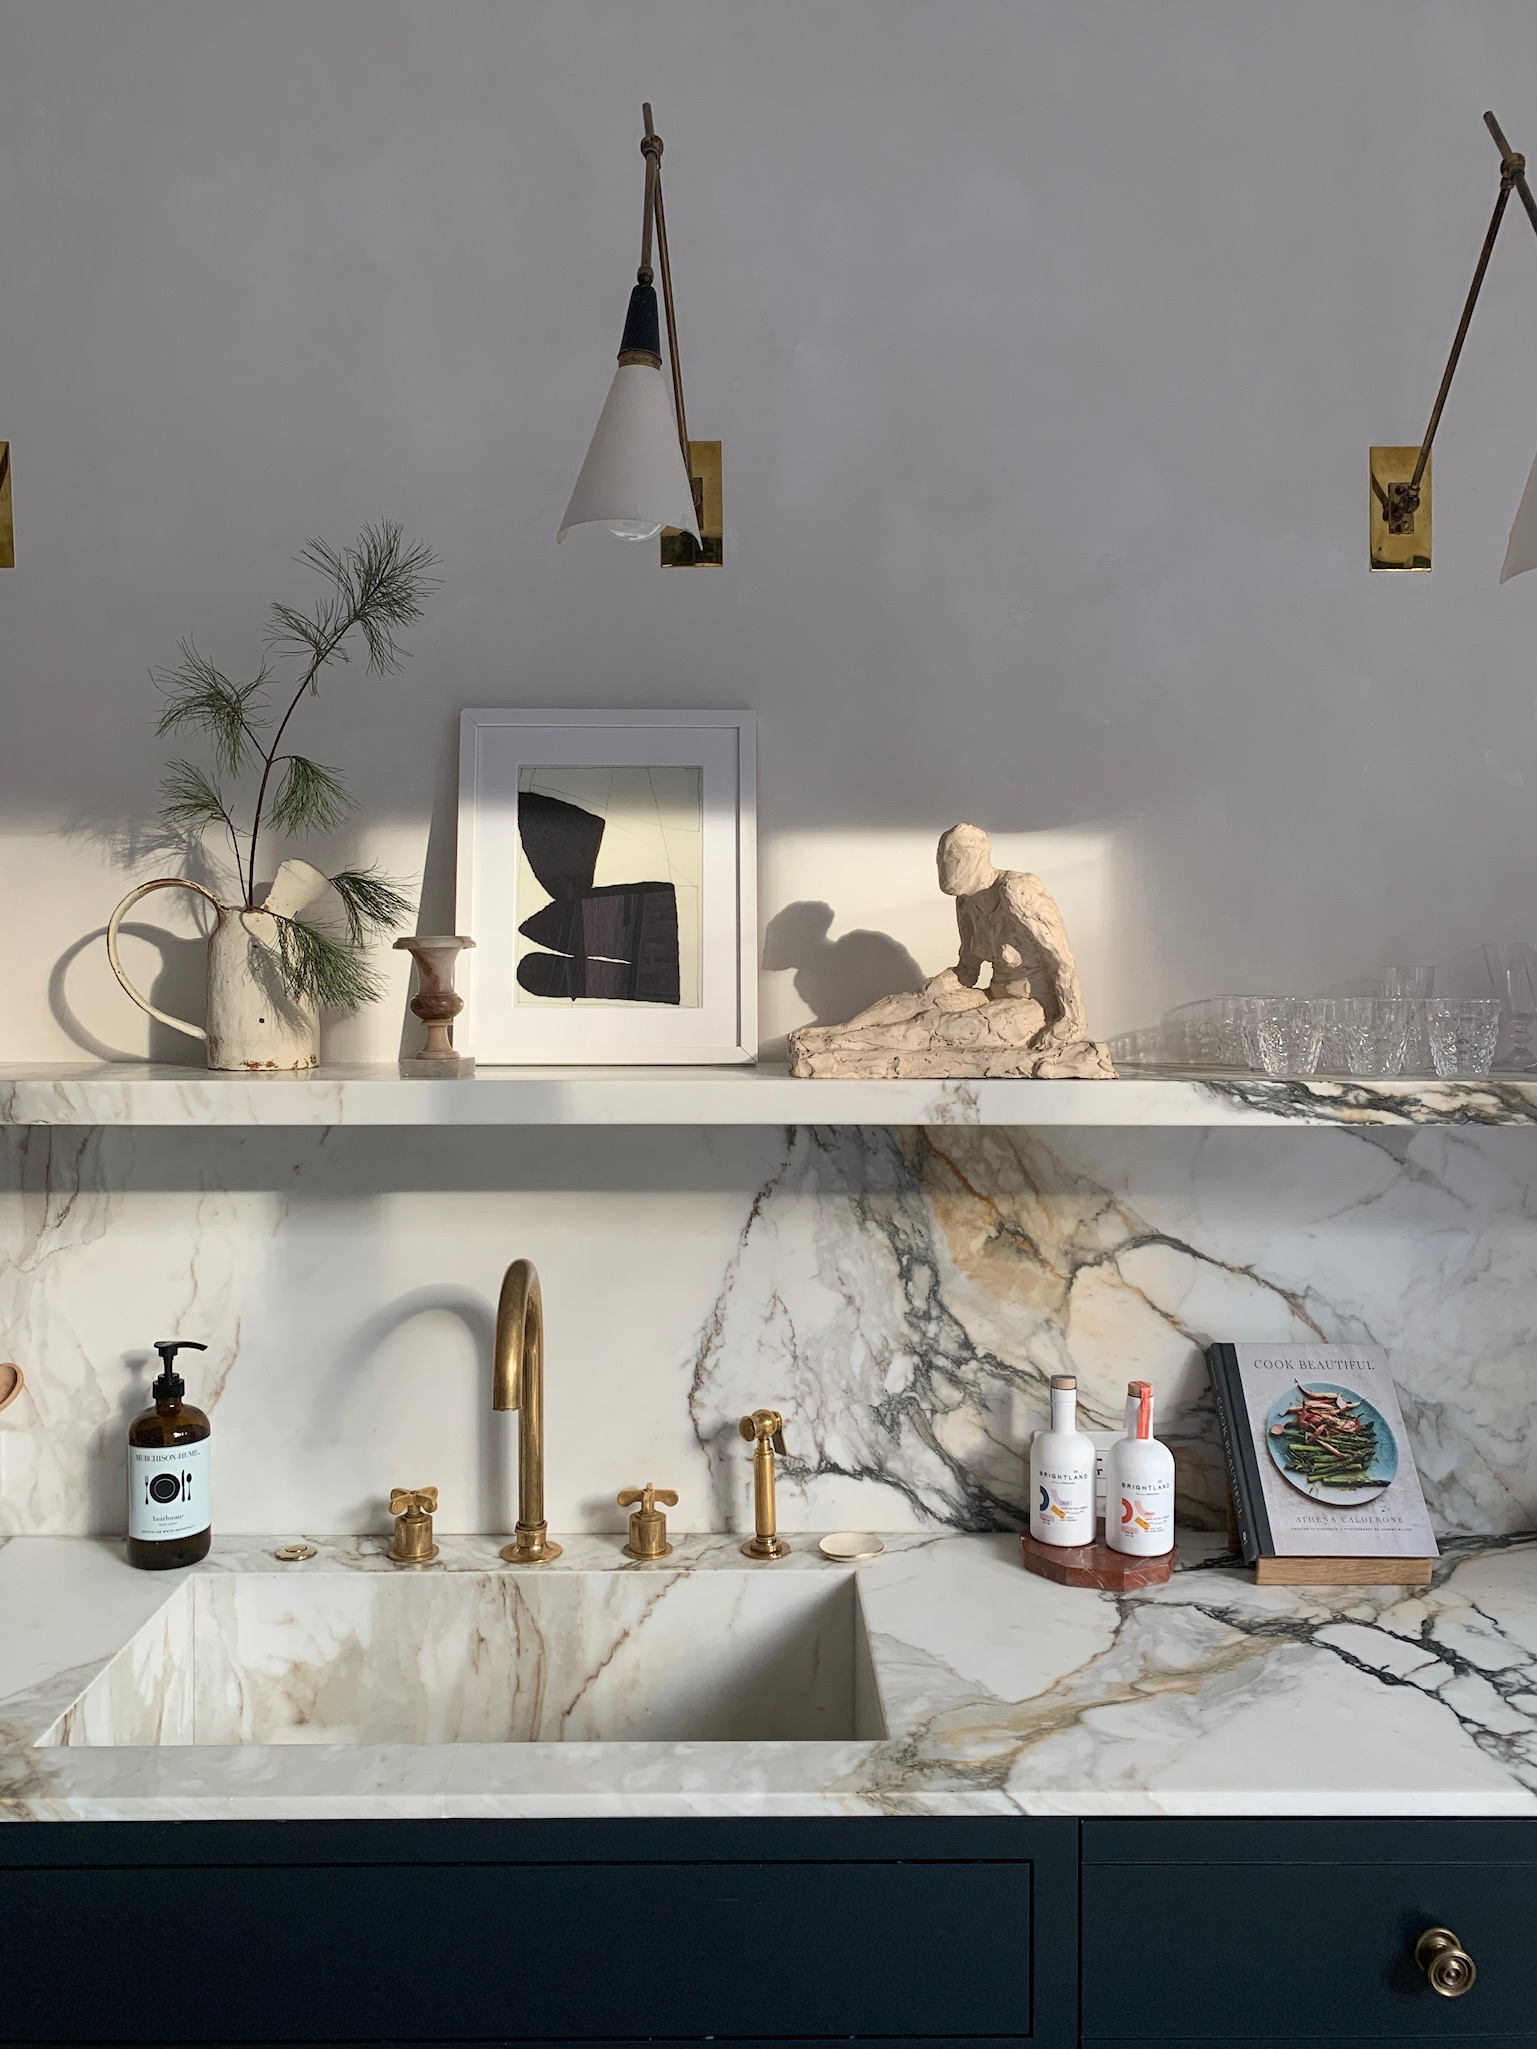 Room Swoon: Shop My Kitchen Shelves